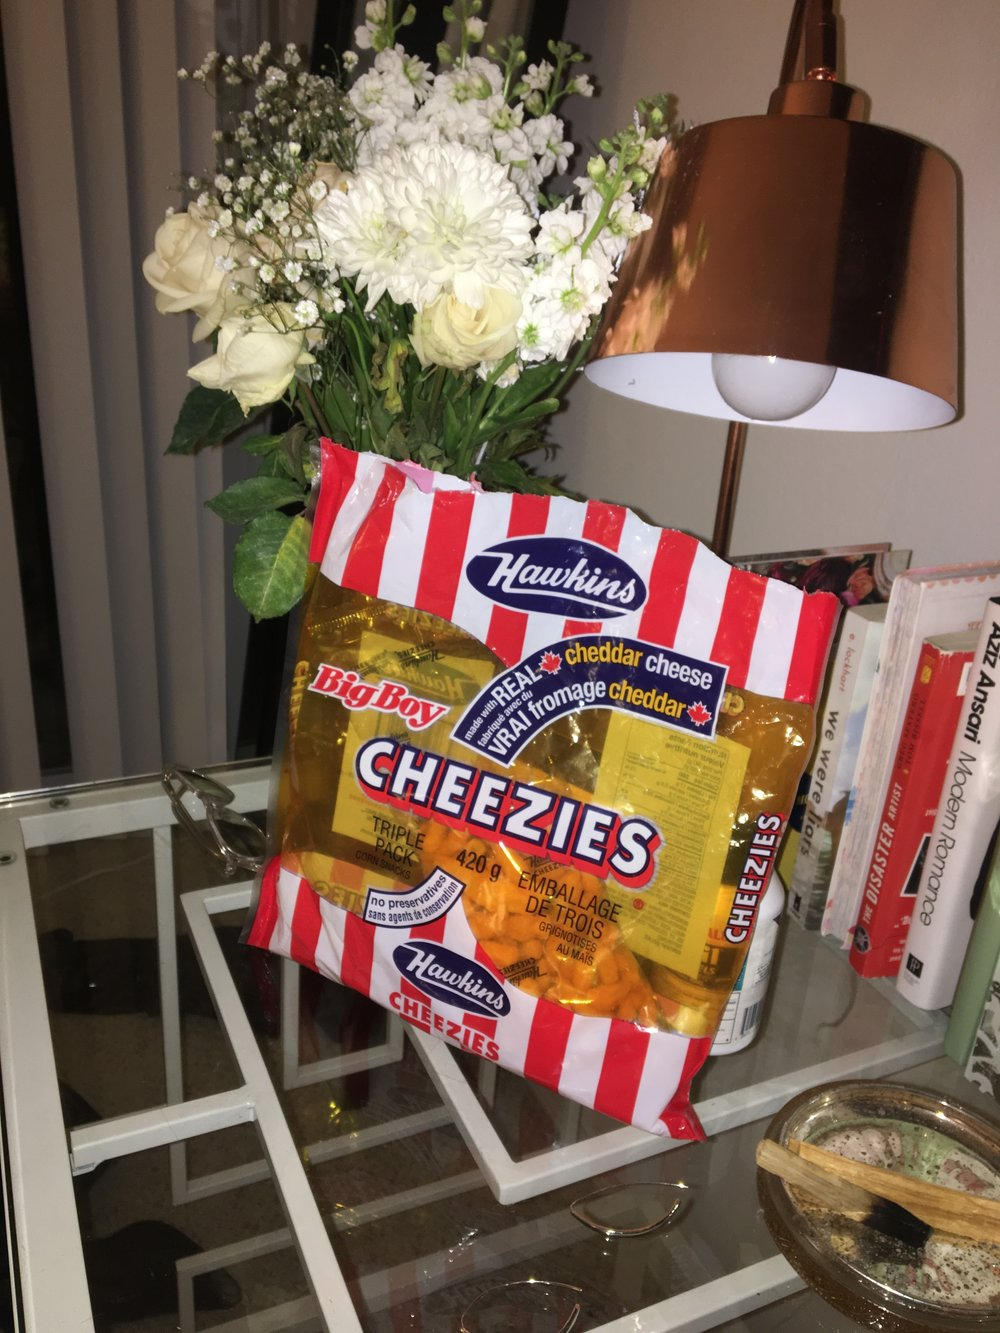 Hawkins Cheezies. A Canadian delicacy.